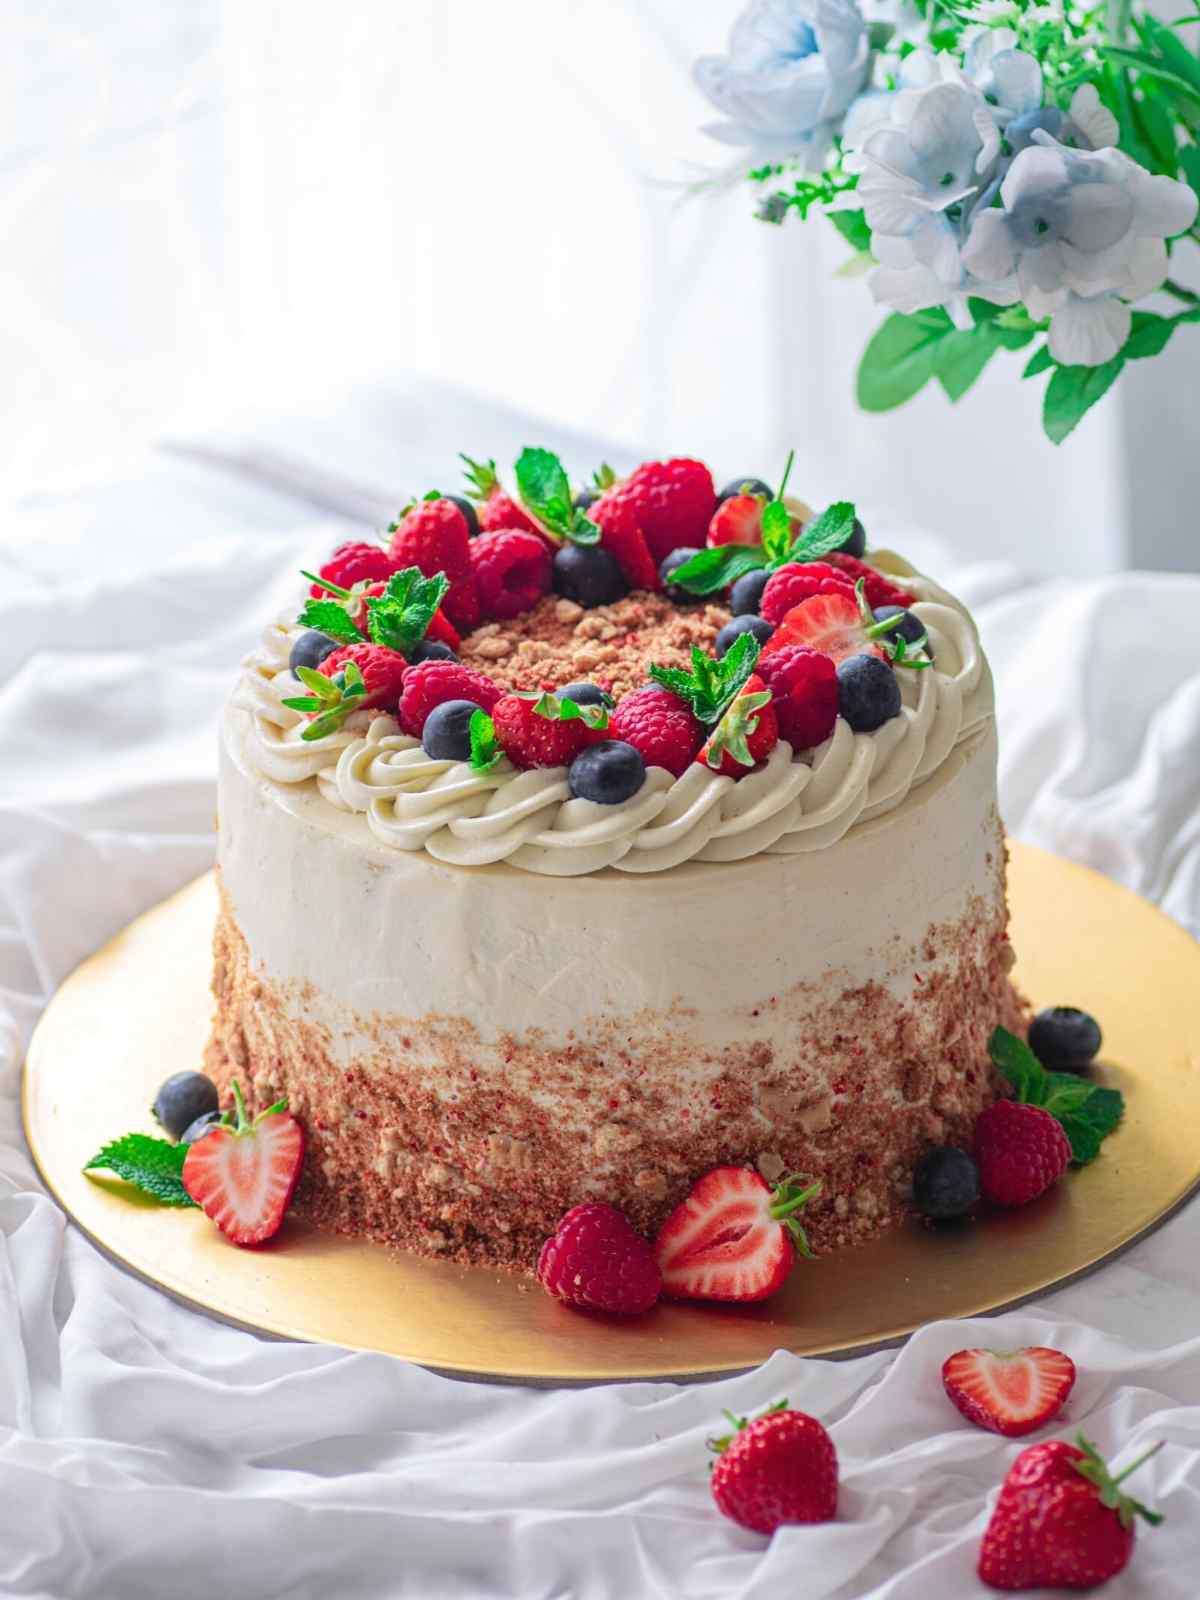 Strawberry cheesecake cake decorated with berries on golden platter and white background